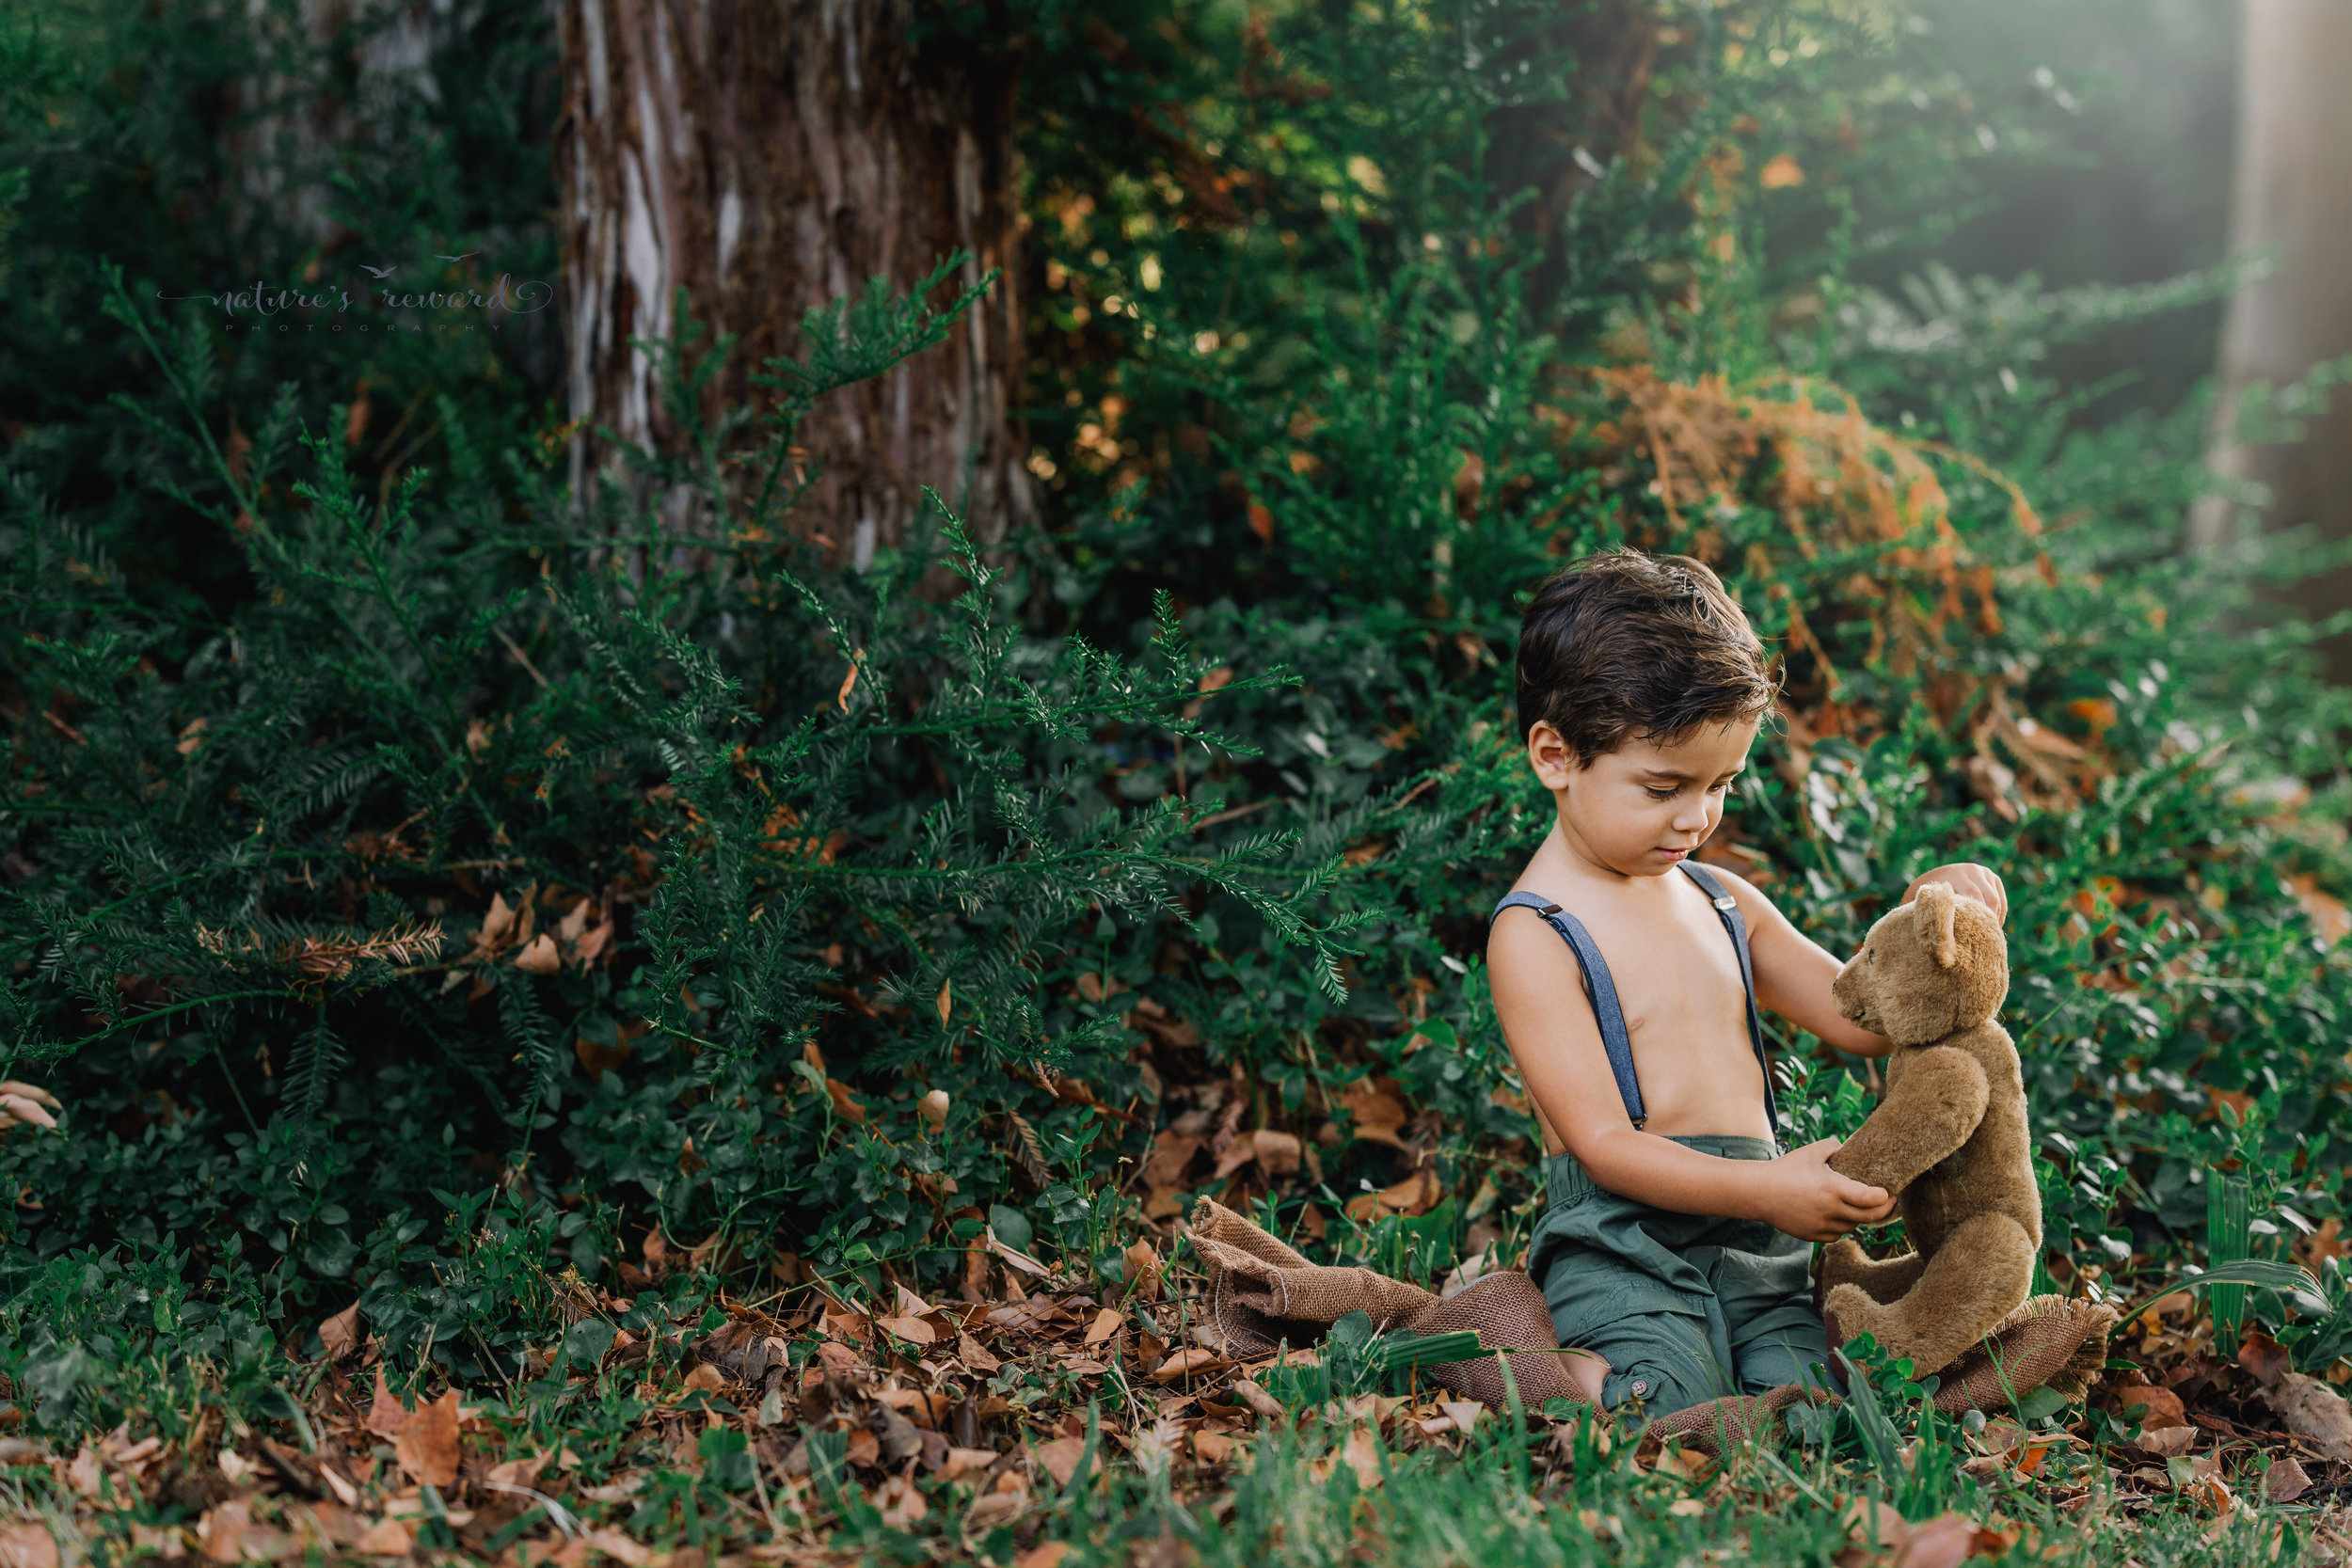 Beautiful toddler baby boy wearing the cutest pair of pants and suspenders playing with his teddy in this vintage inspired portrait by Nature's Reward Photography